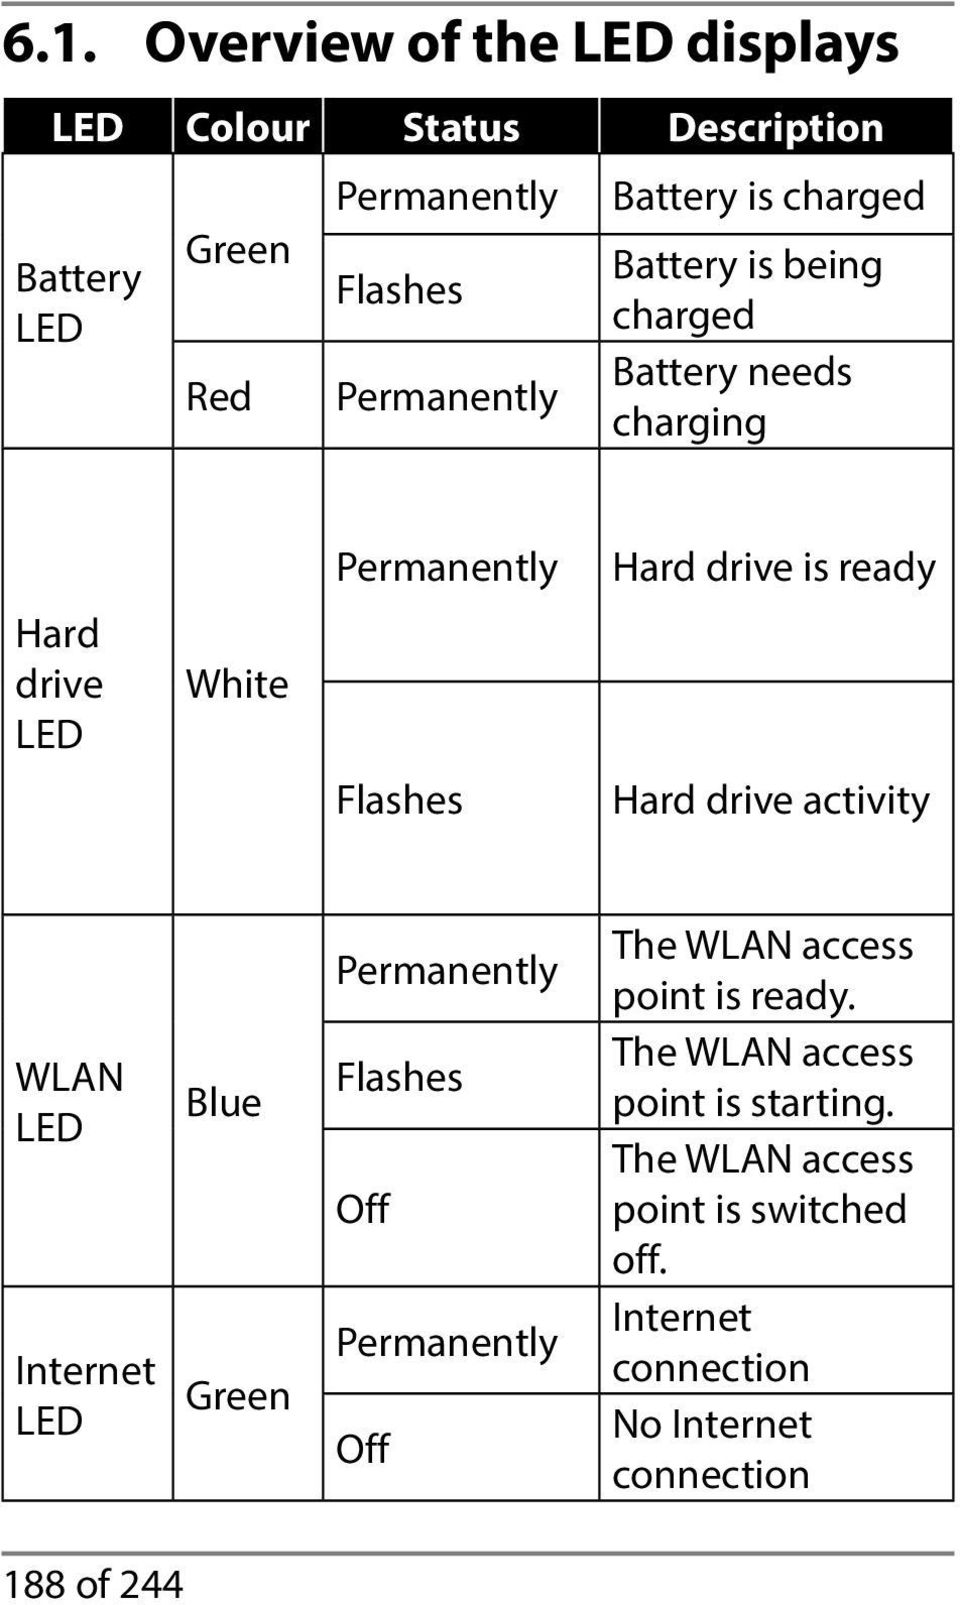 ready Hard drive activity WLAN LED Internet LED Blue Green Permanently Flashes Off Permanently Off The WLAN access point is